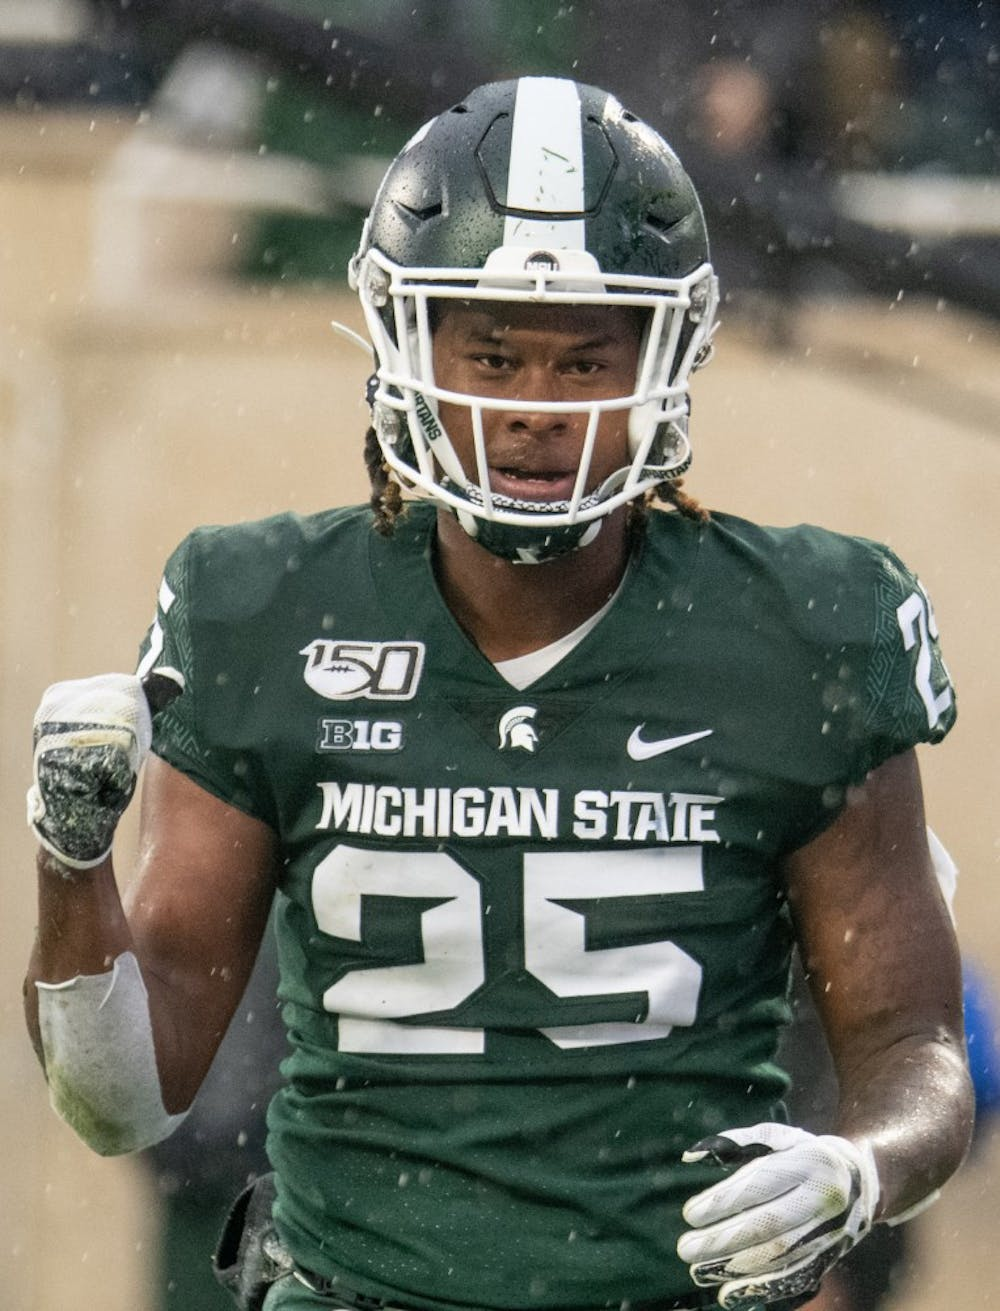 <p>Redshirt senior wide receiver Darrell Stewart (25) celebrates during the game against Penn State Oct. 26, 2019 at Spartan Stadium. The Spartans fell to the Nittany Lions, 28-7.</p>